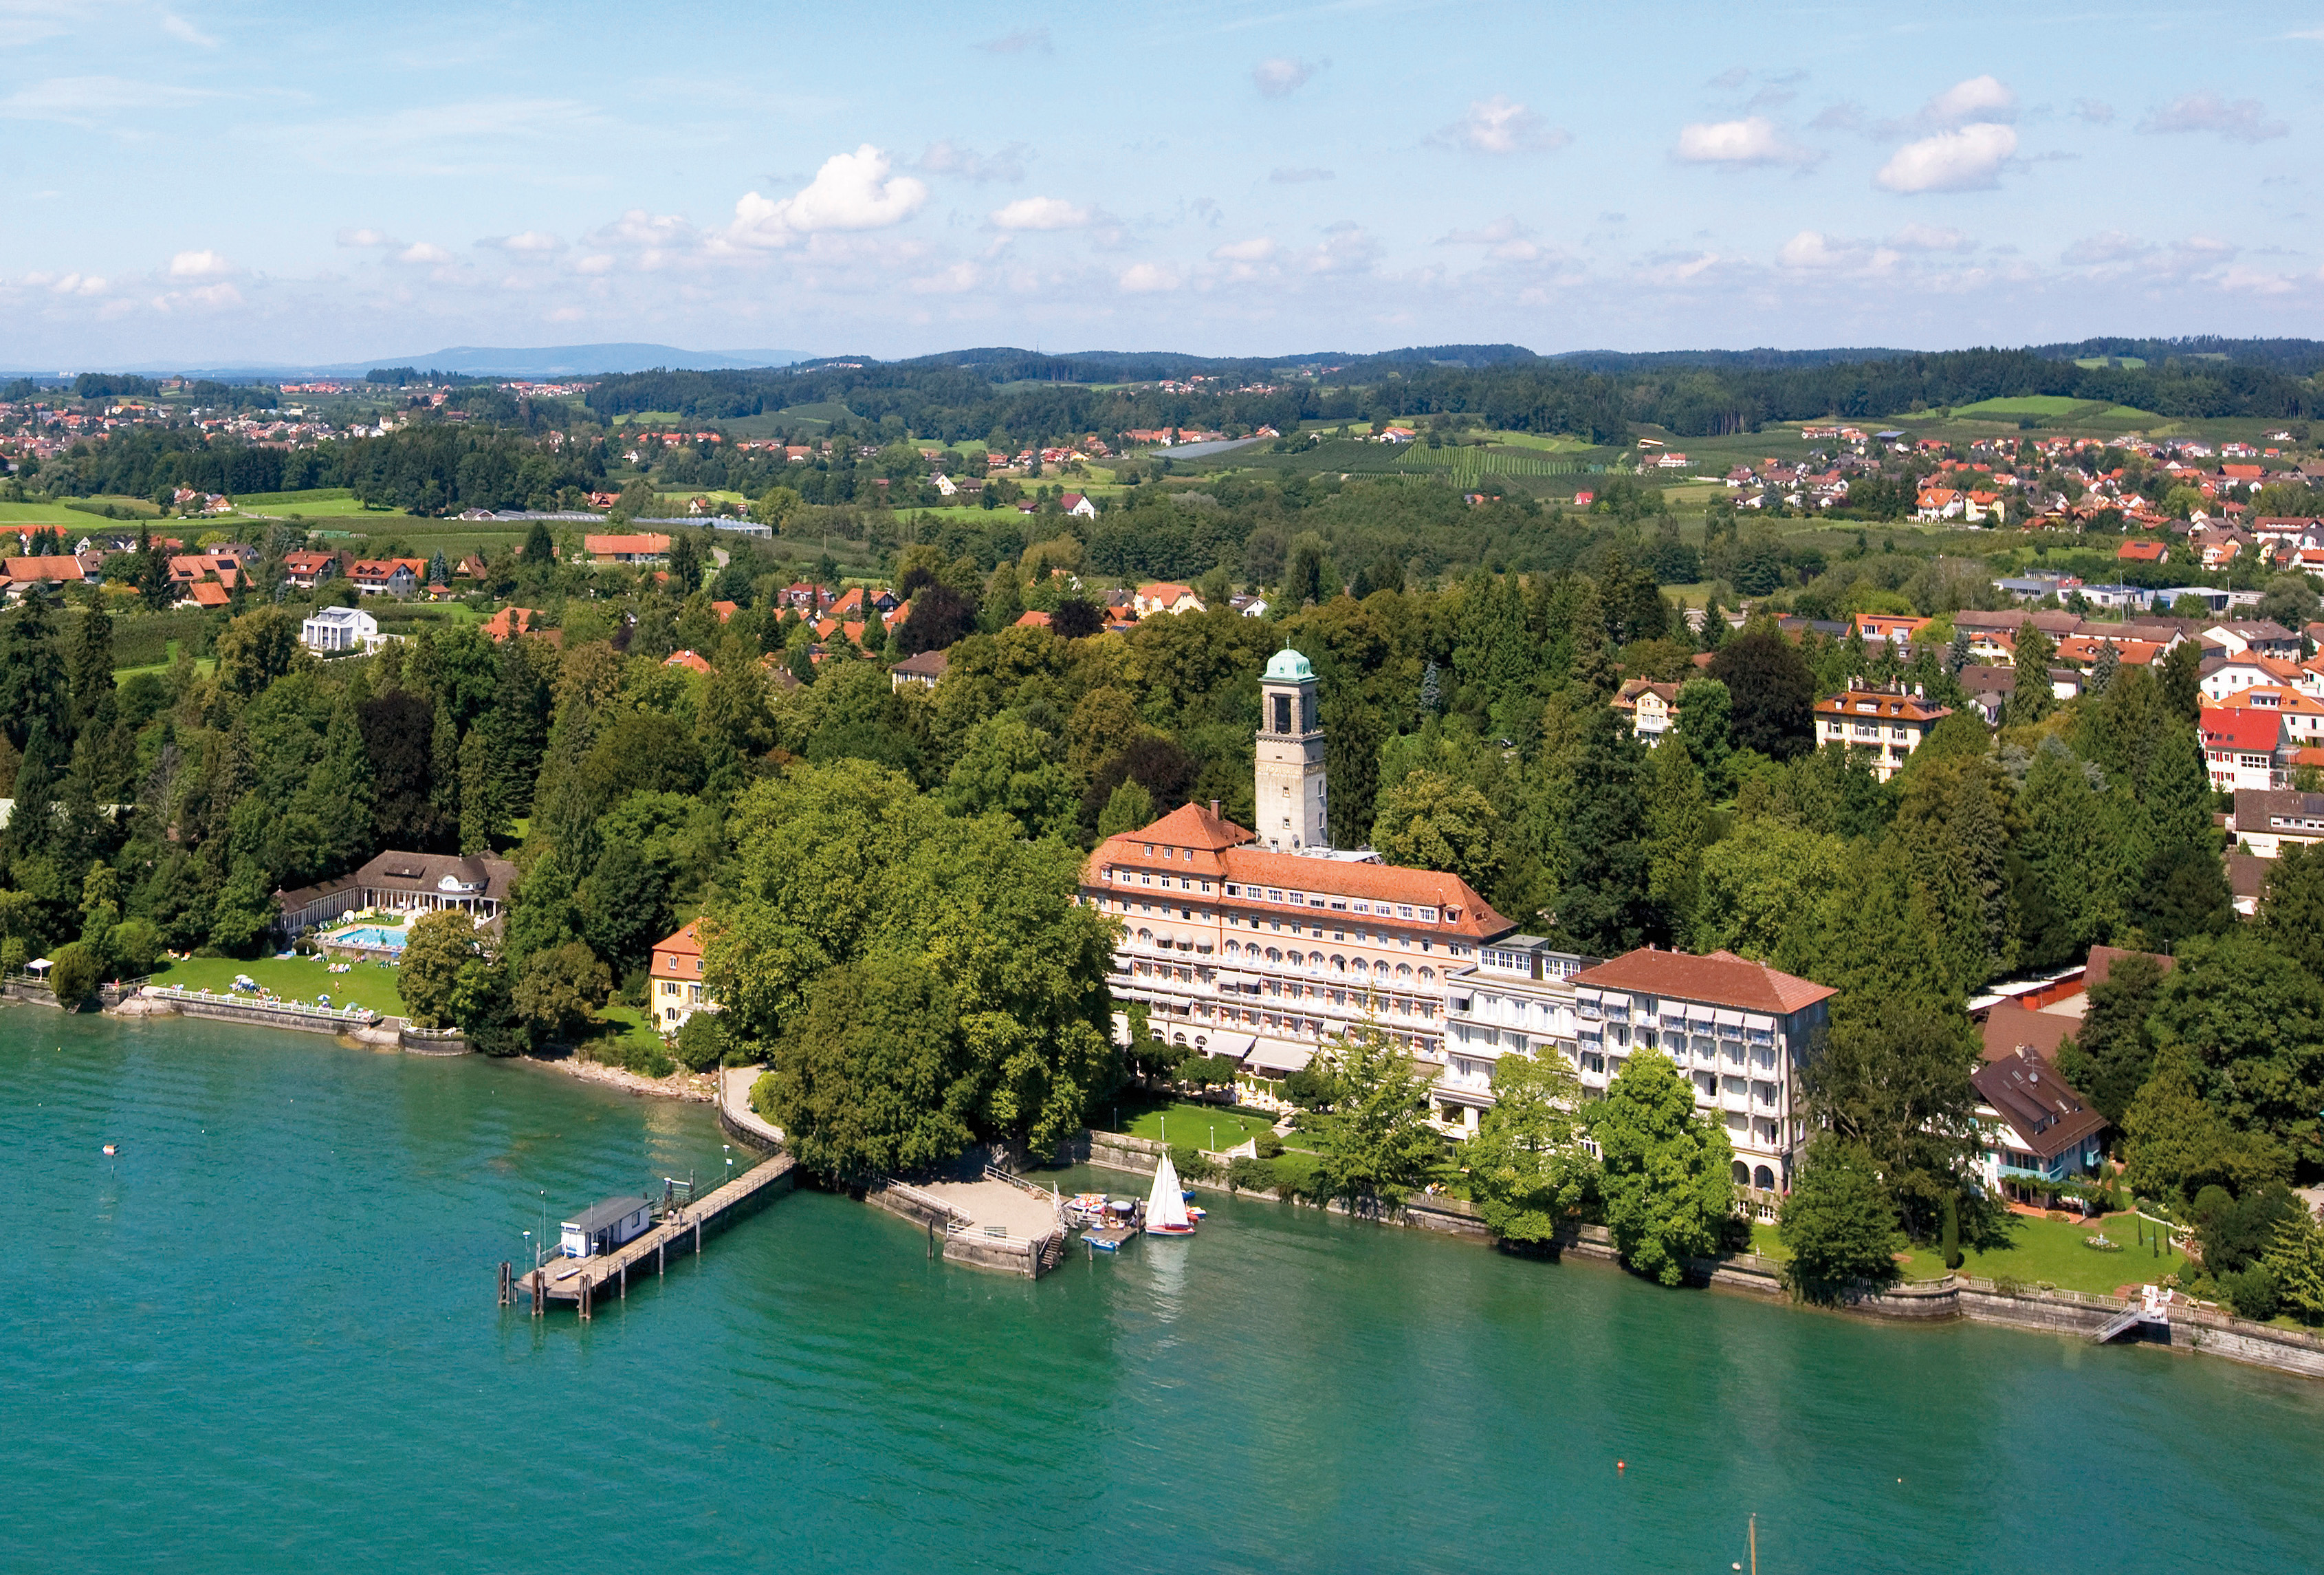 Bodensee_03